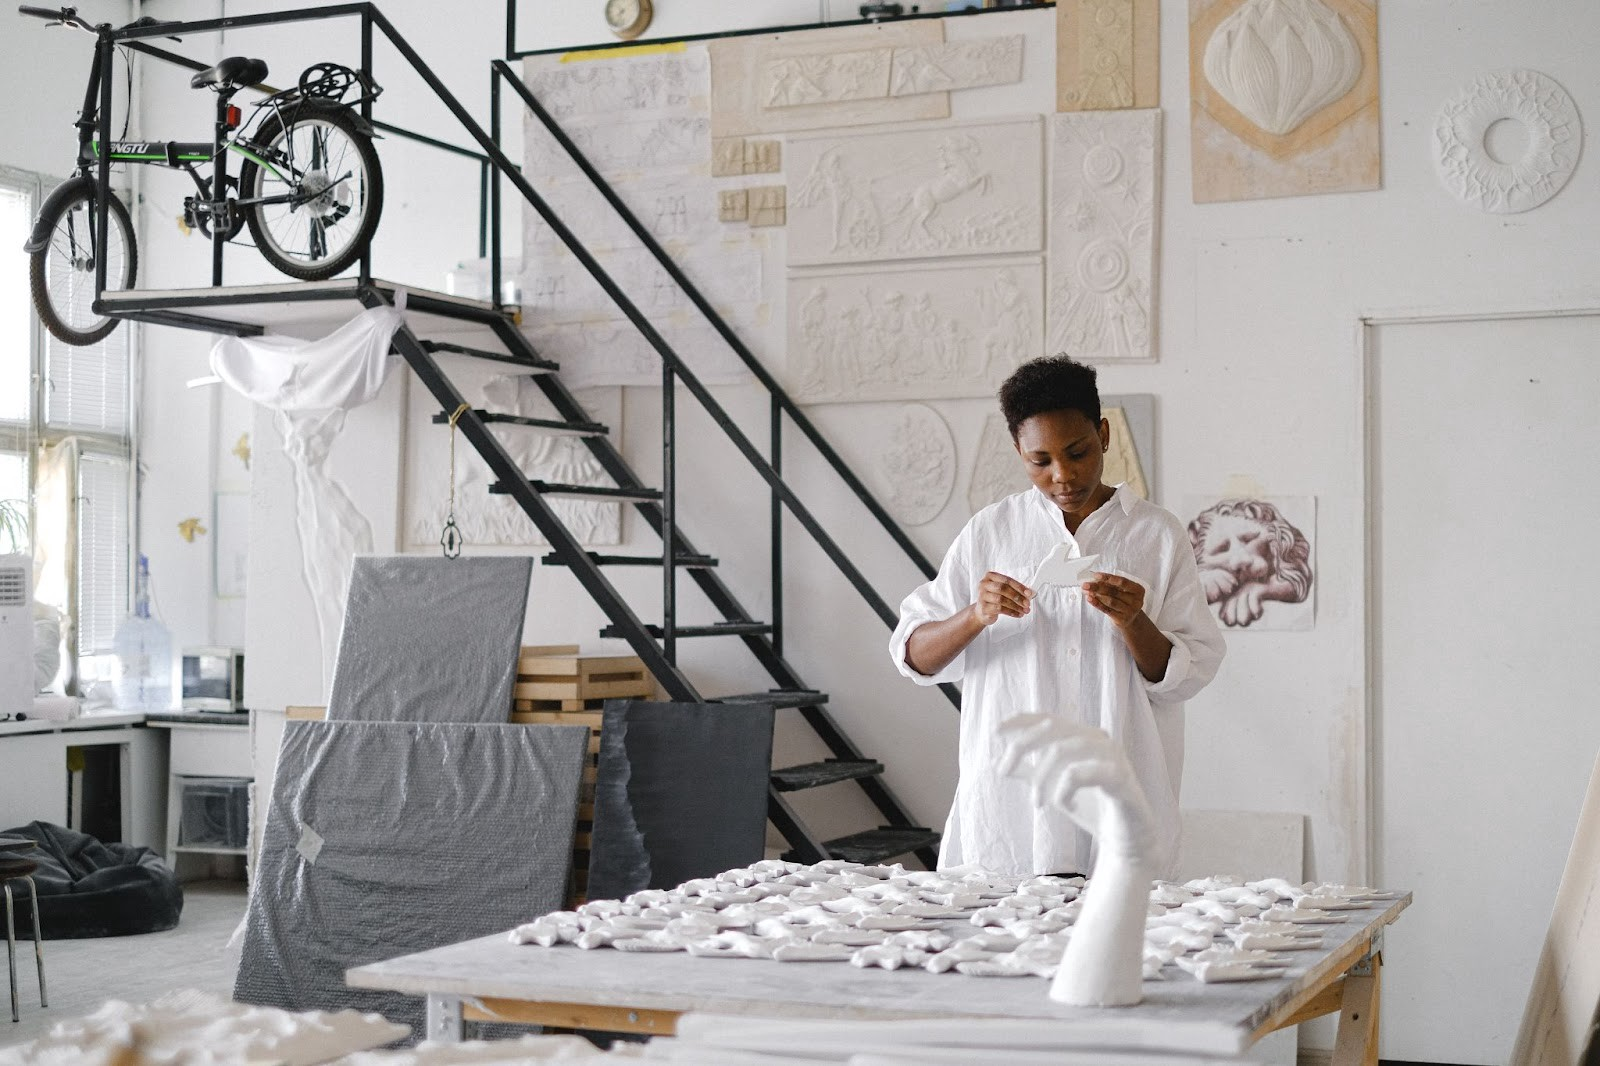 Woman in a white art studio, wearing a white dress and hold a piece of plaster shaped like a bird. The table infront is full of plaster mouldings and the walls are covered in flat sculptures.